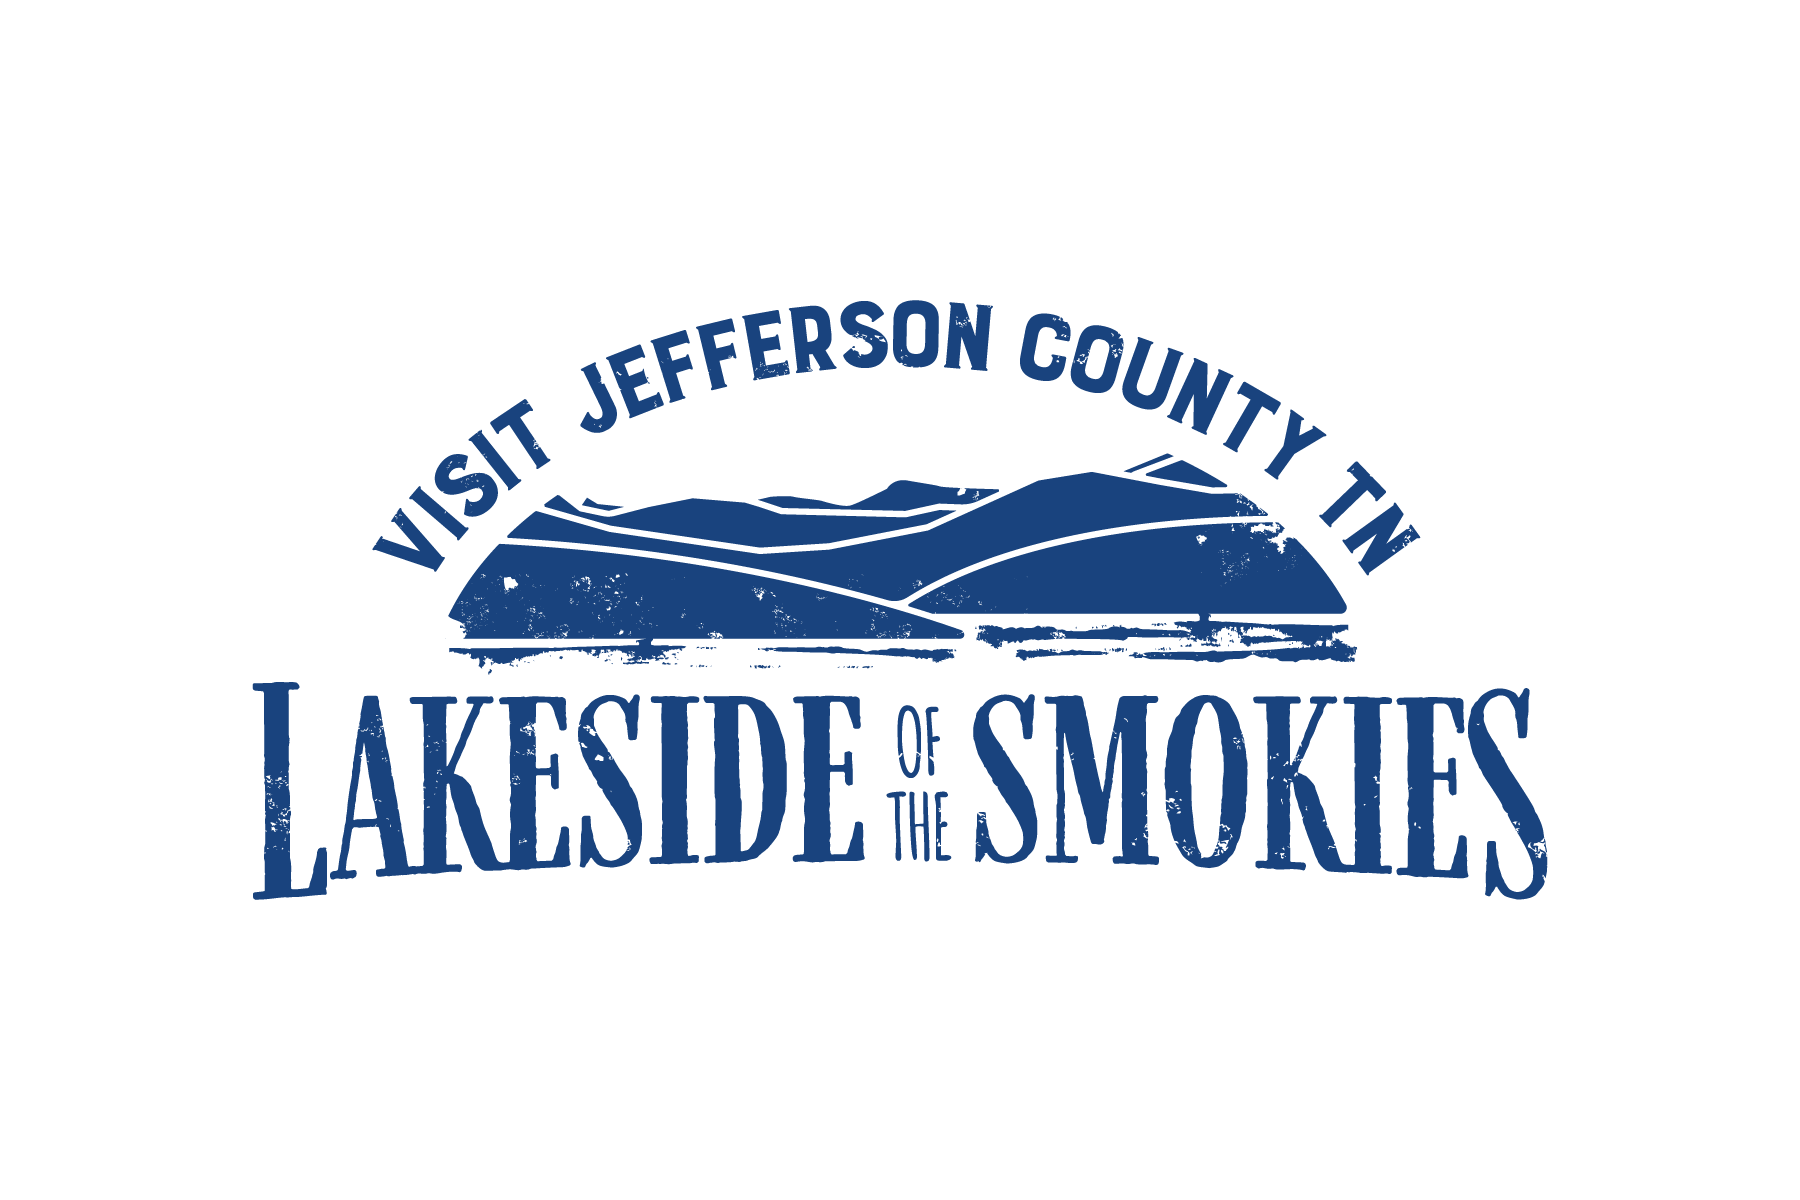 Visit Jefferson County